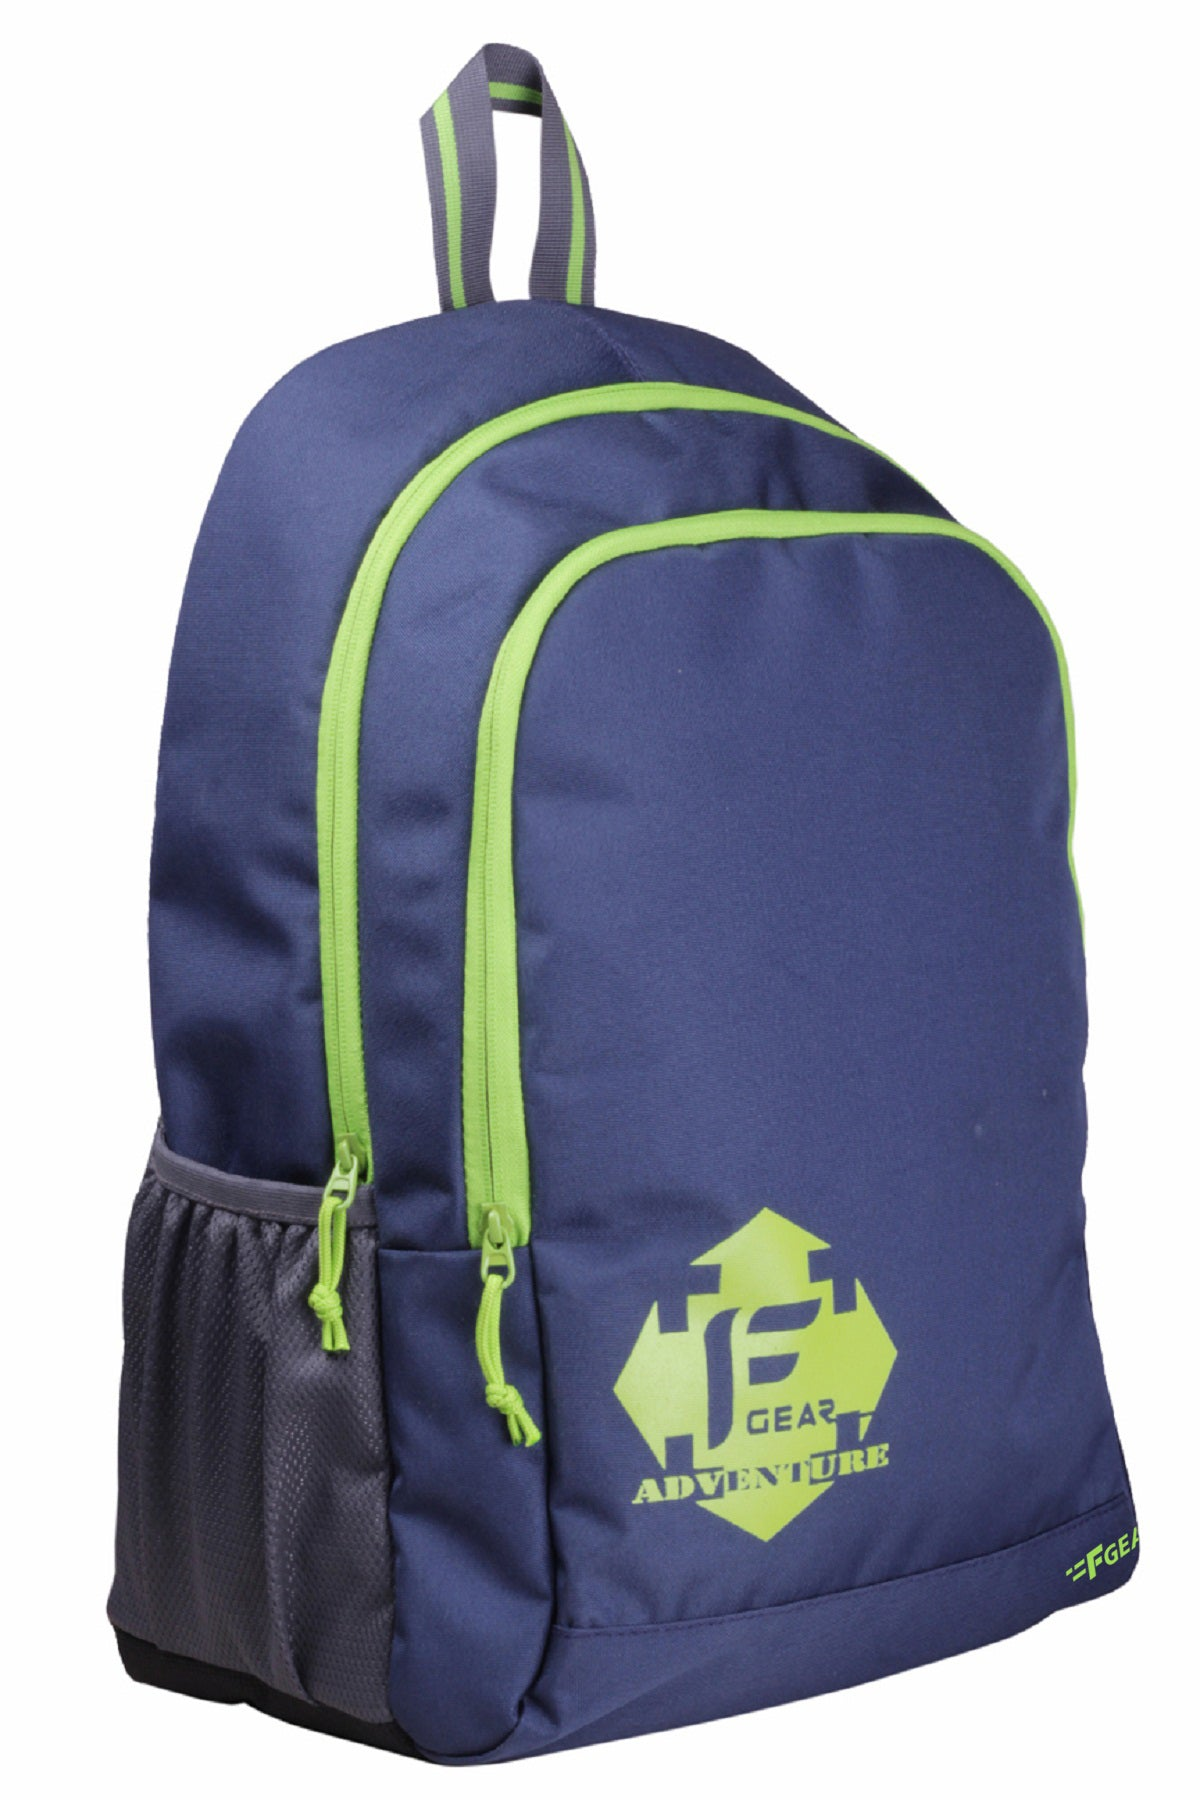 F Gear Castle NBG 24 Ltrs Green Casual Backpack (2264)